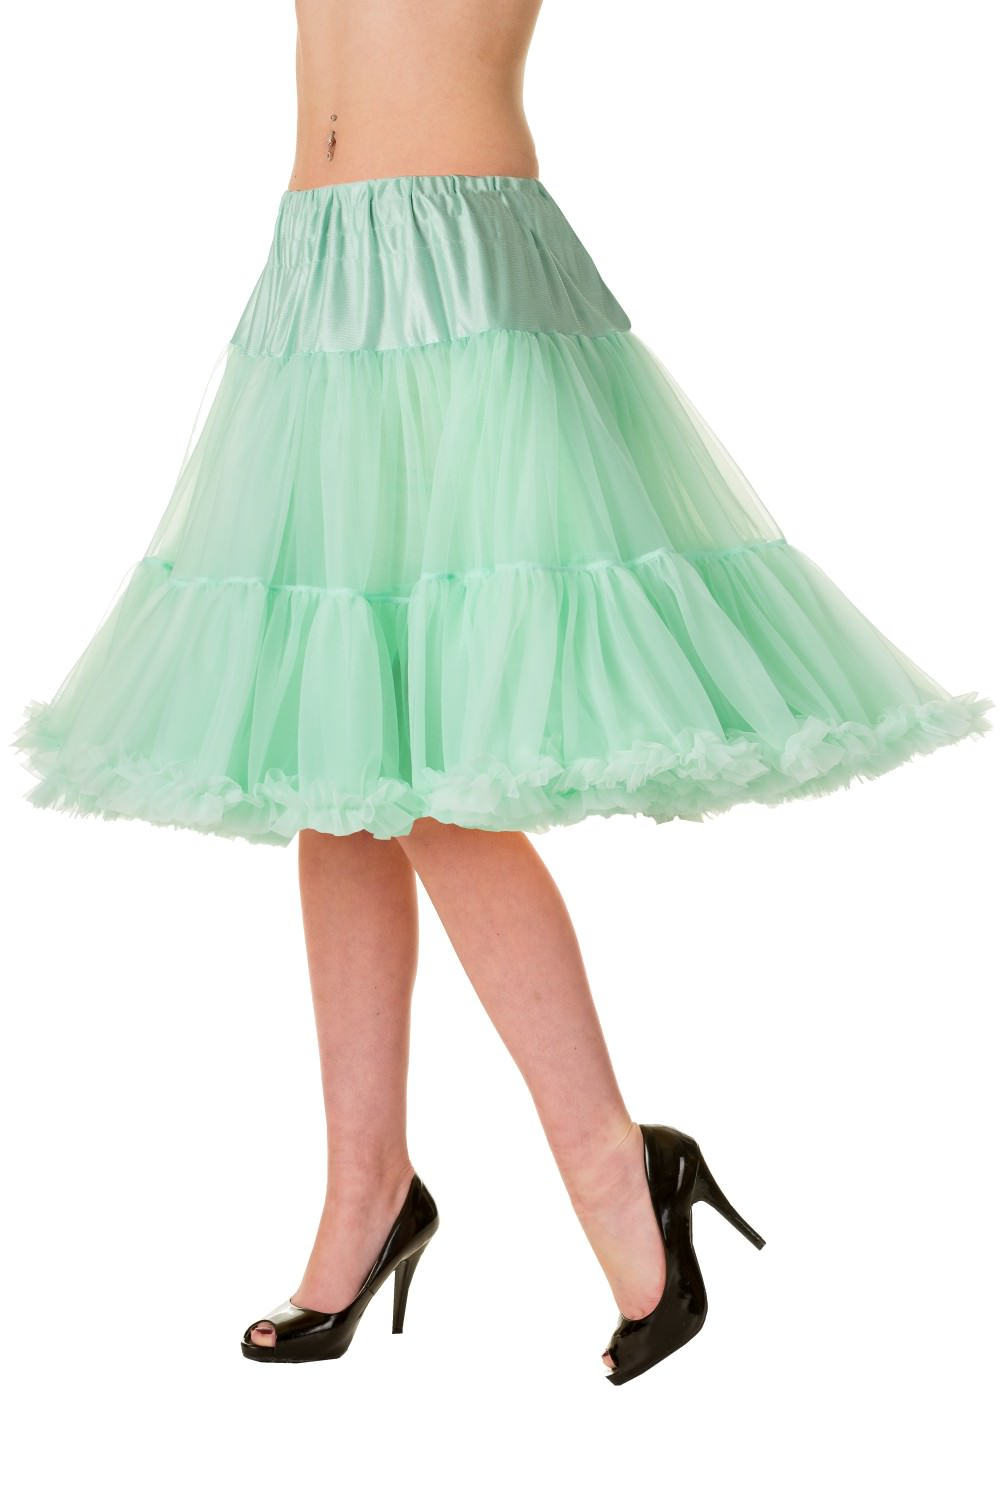 Walkabout Petticoat in Mint - Natasha Marie Clothing